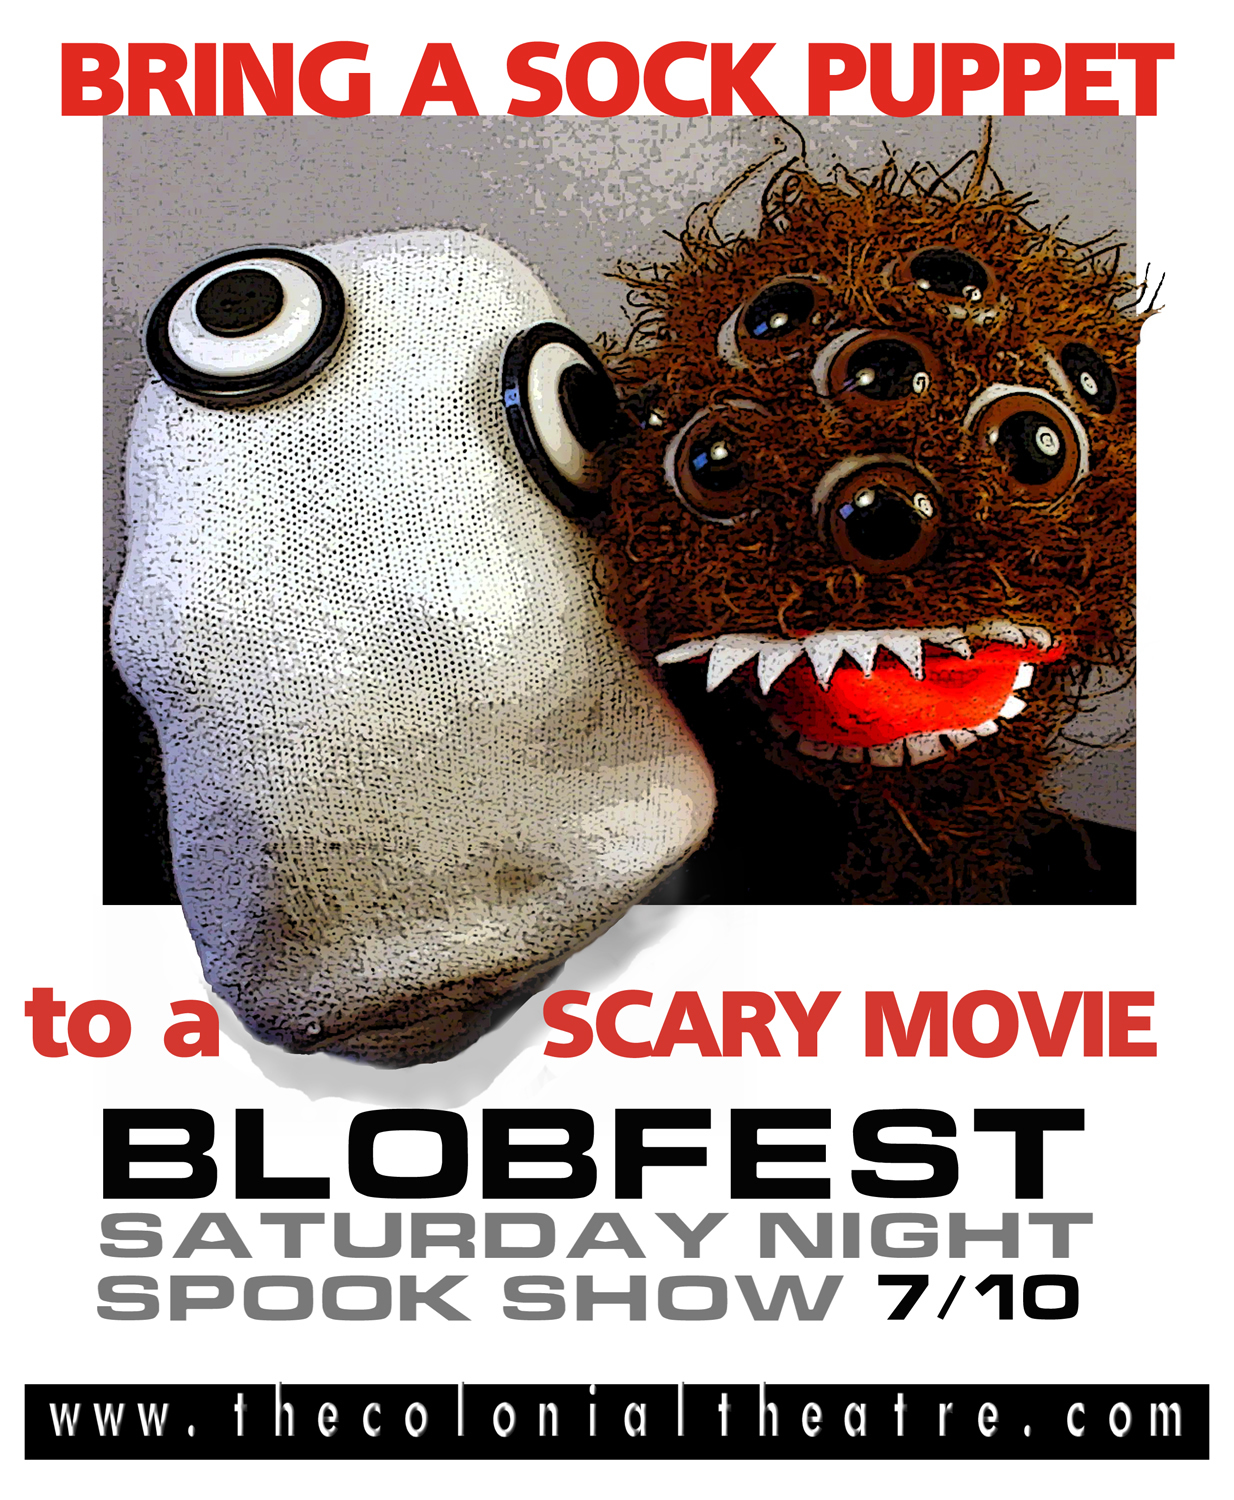 Prospective attendees of Blobfest are encouraged to bring sock puppets